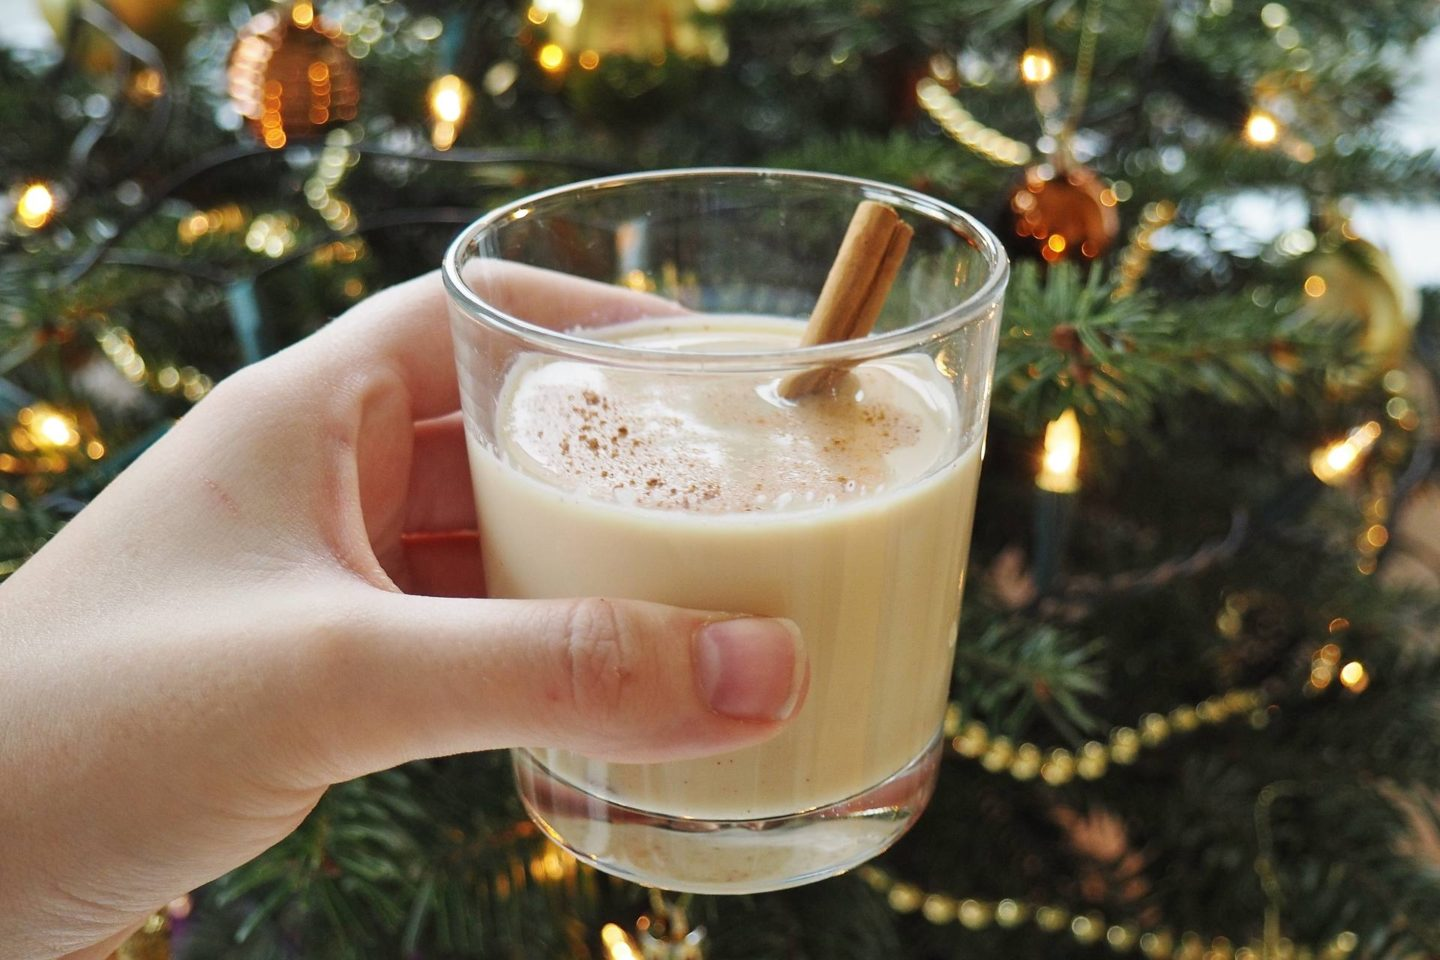 Emma Victoria Stokes Diageo Baileys Eggnog Sponsored Post